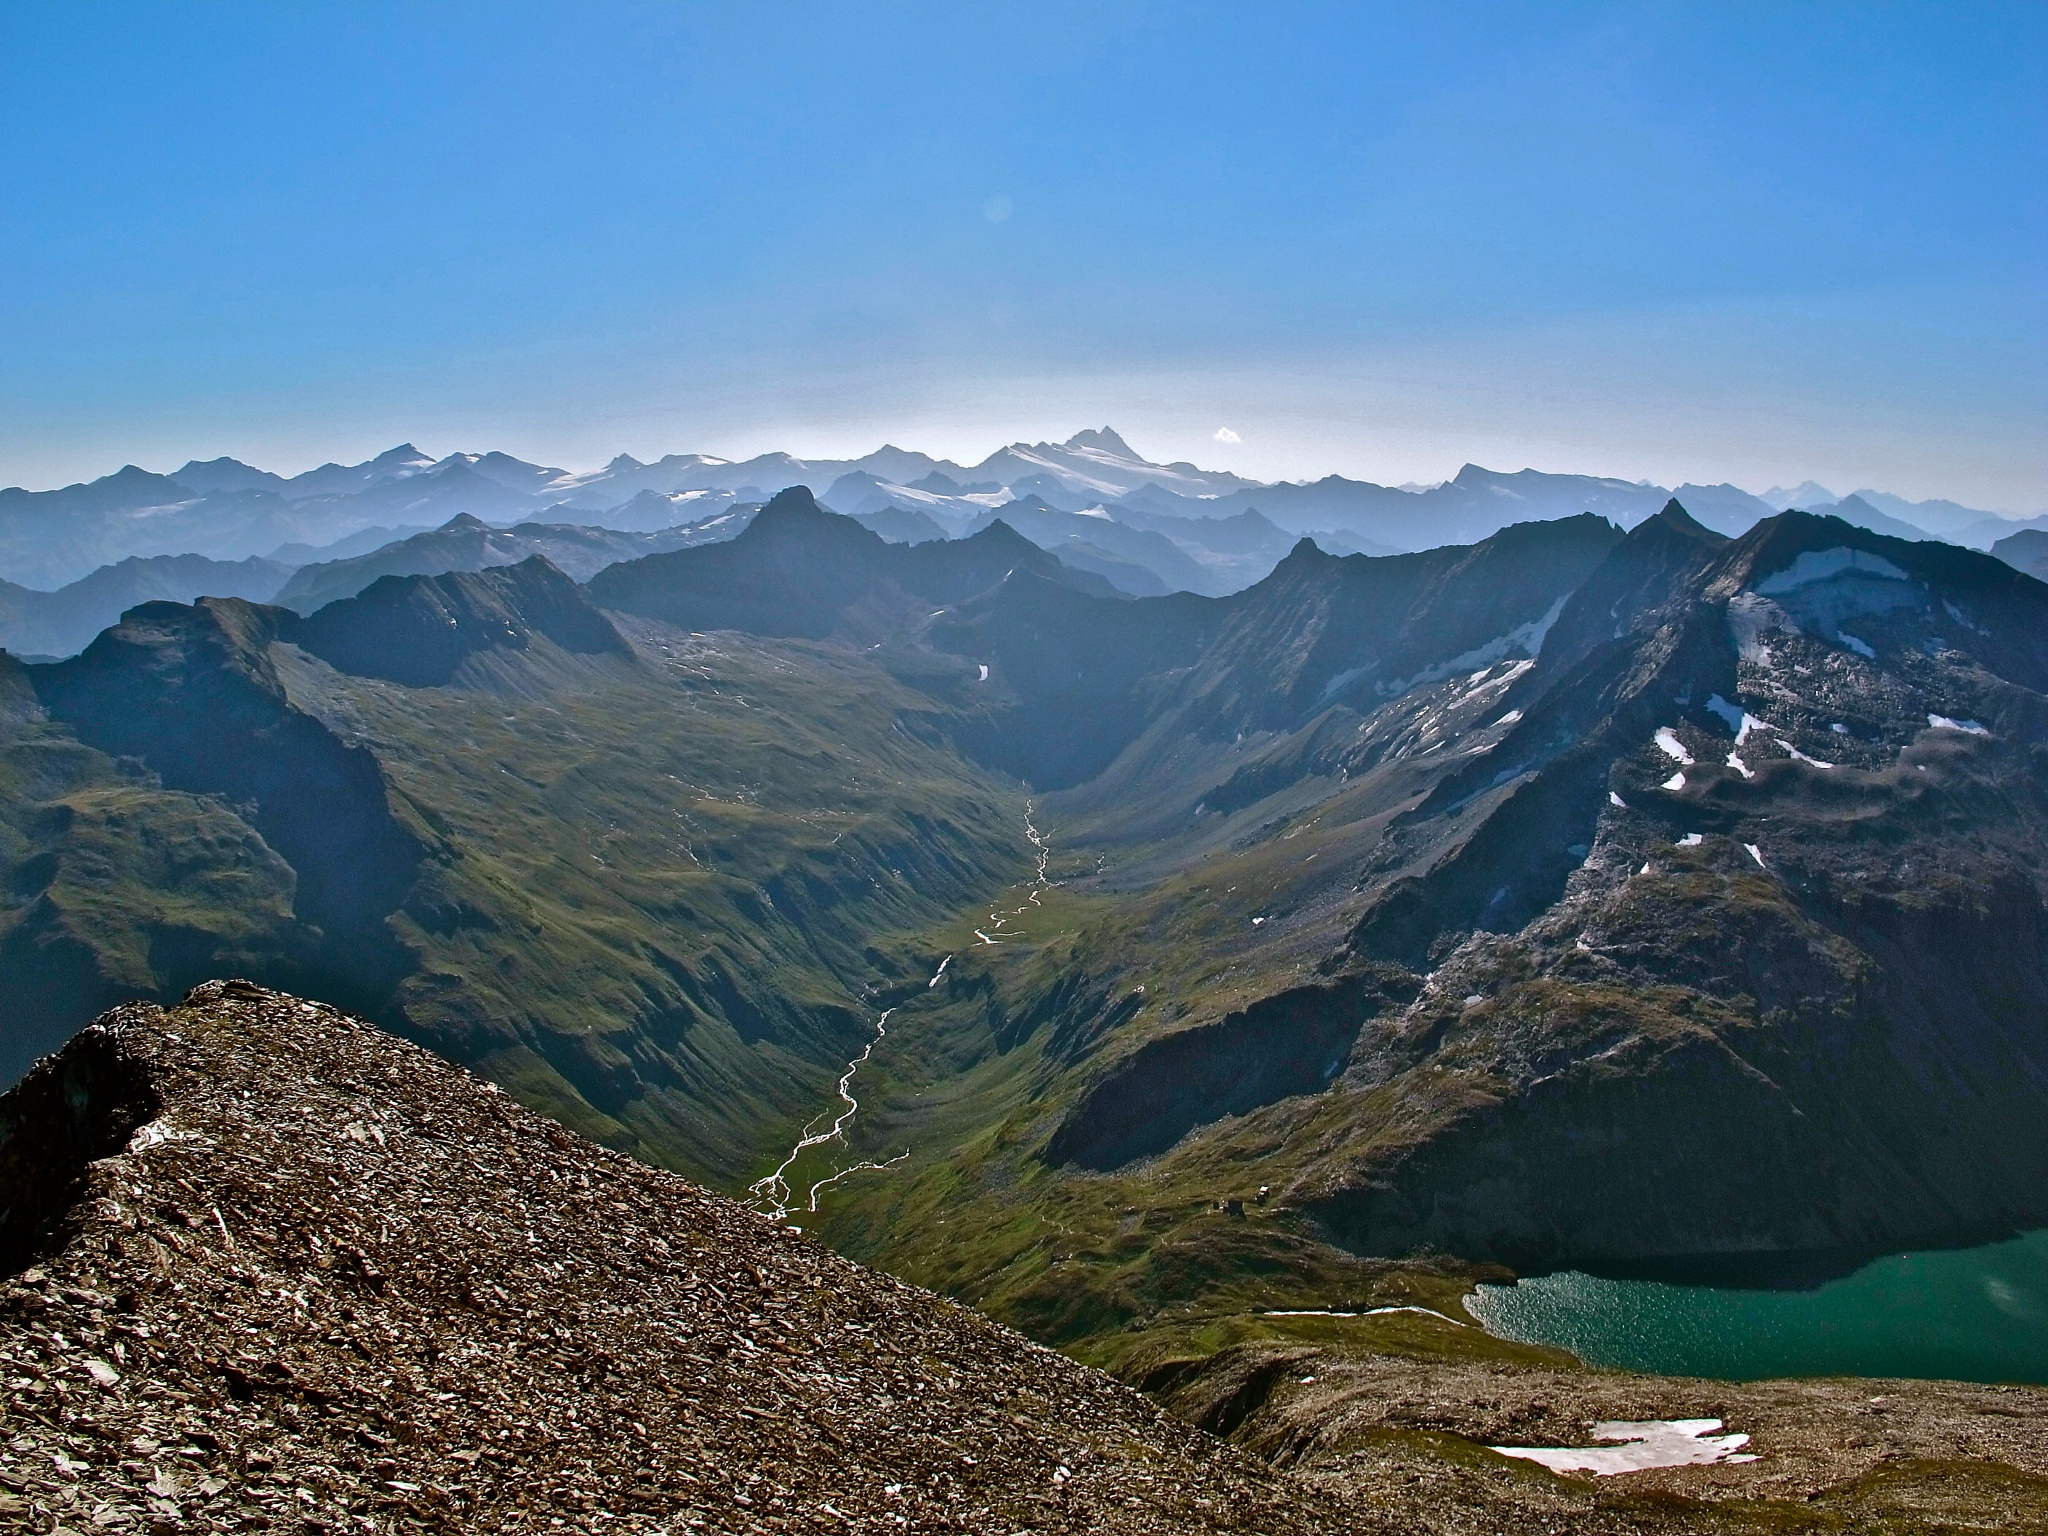 View from Larmkogel (3022 m) towards the Grossglockner by echumachenco